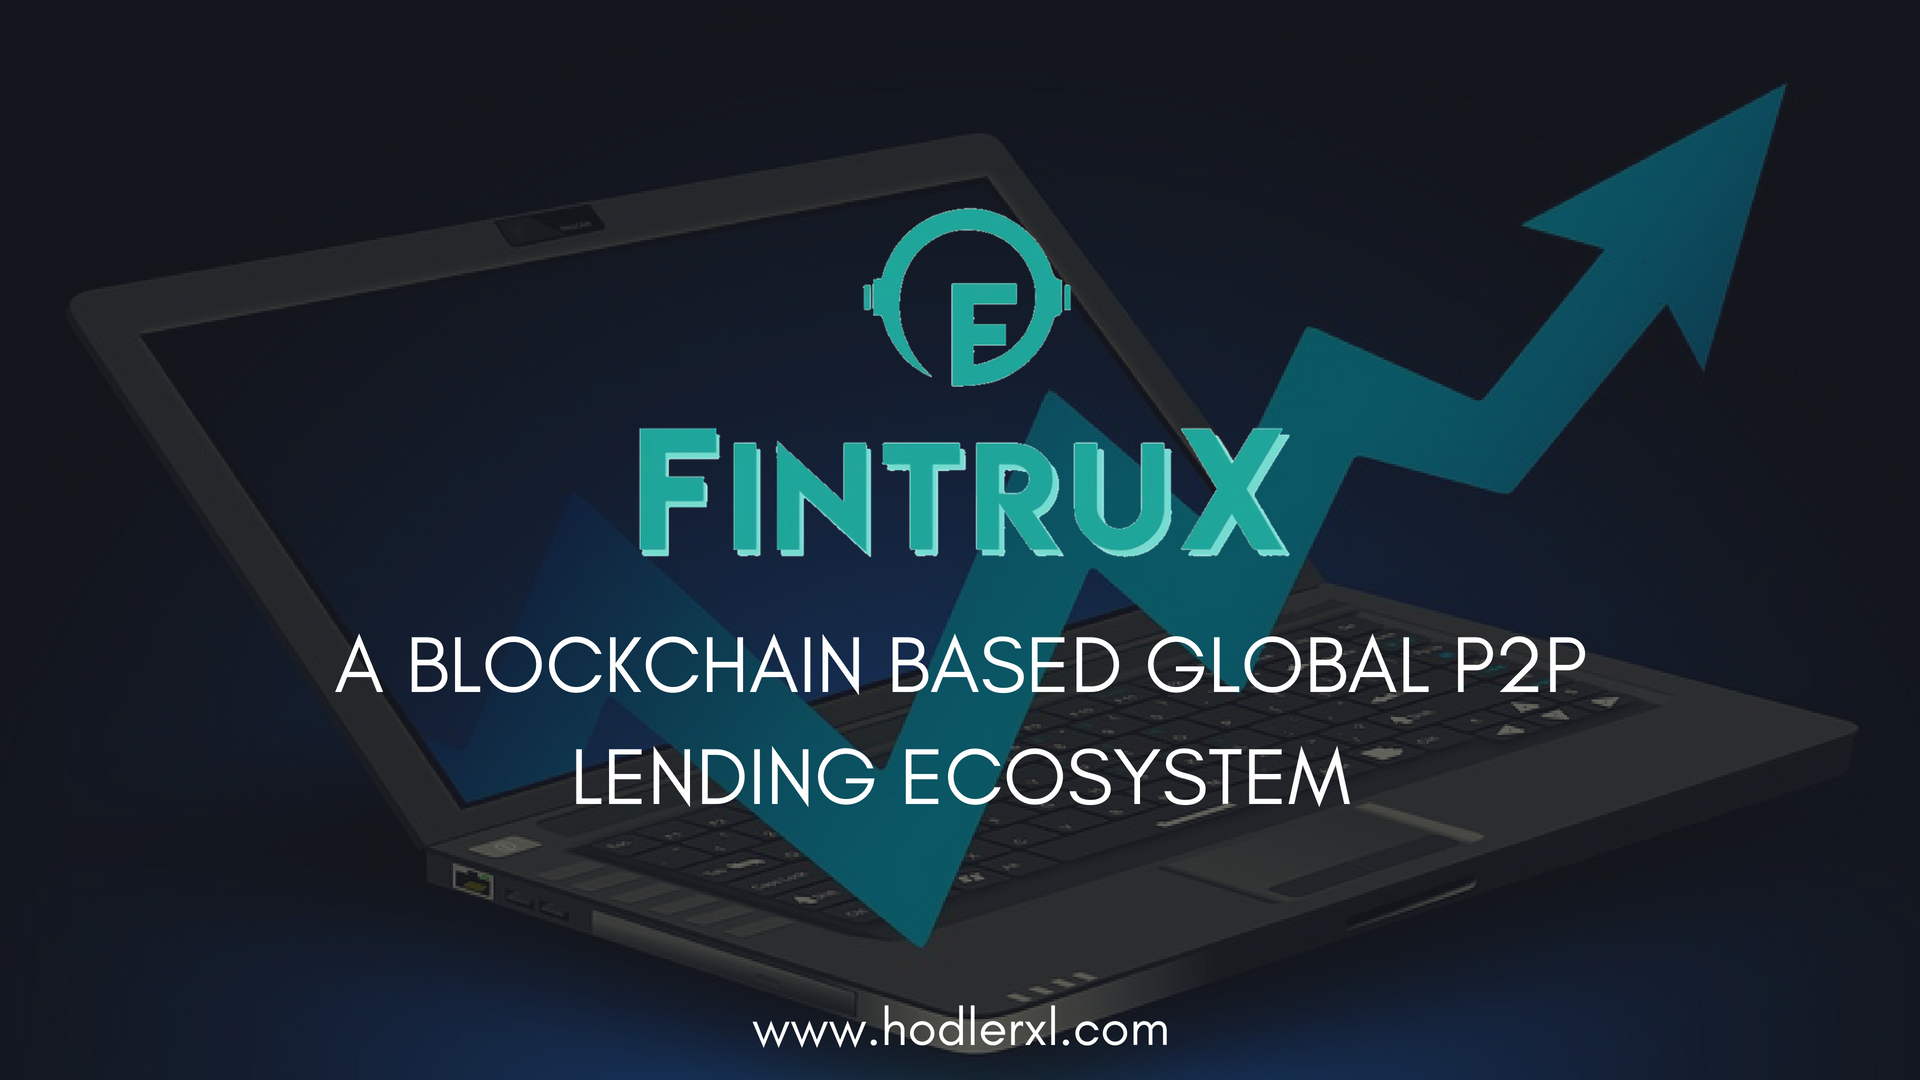 FintruX Blockchain Based Global P2P Lending Ecosystem